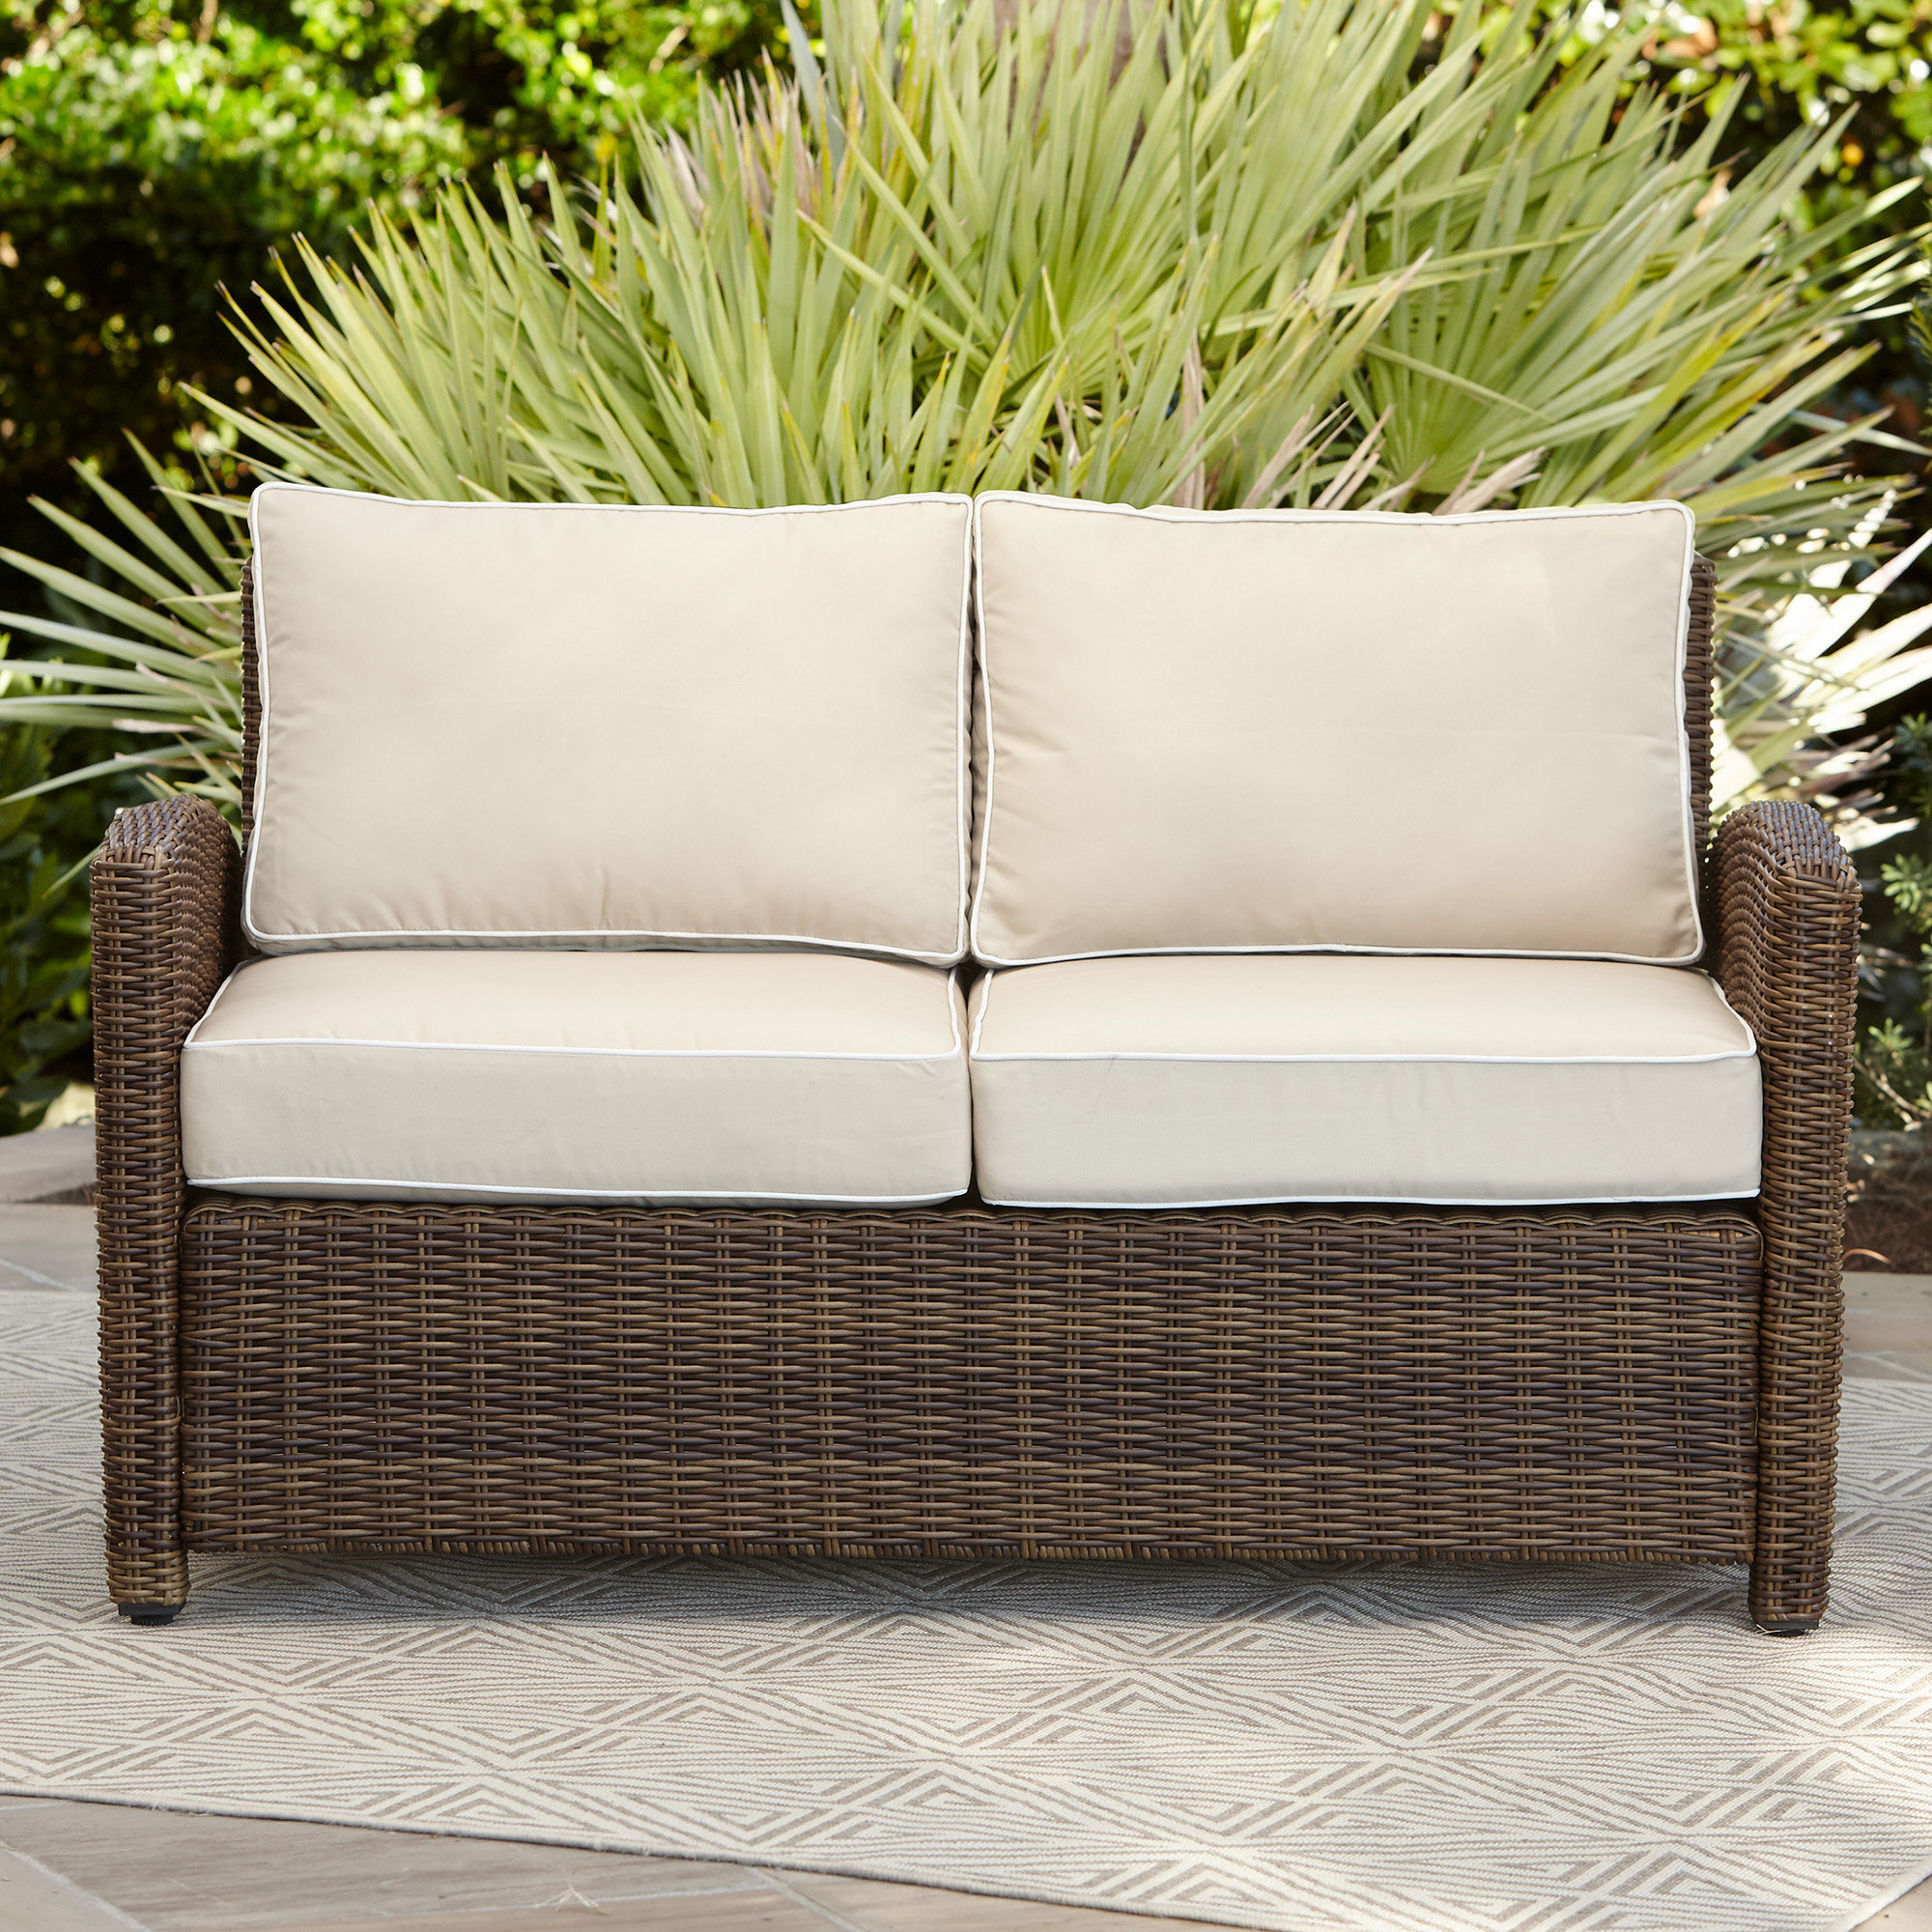 White Wicker Resin Loveseat You'll Love In (View 6 of 20)